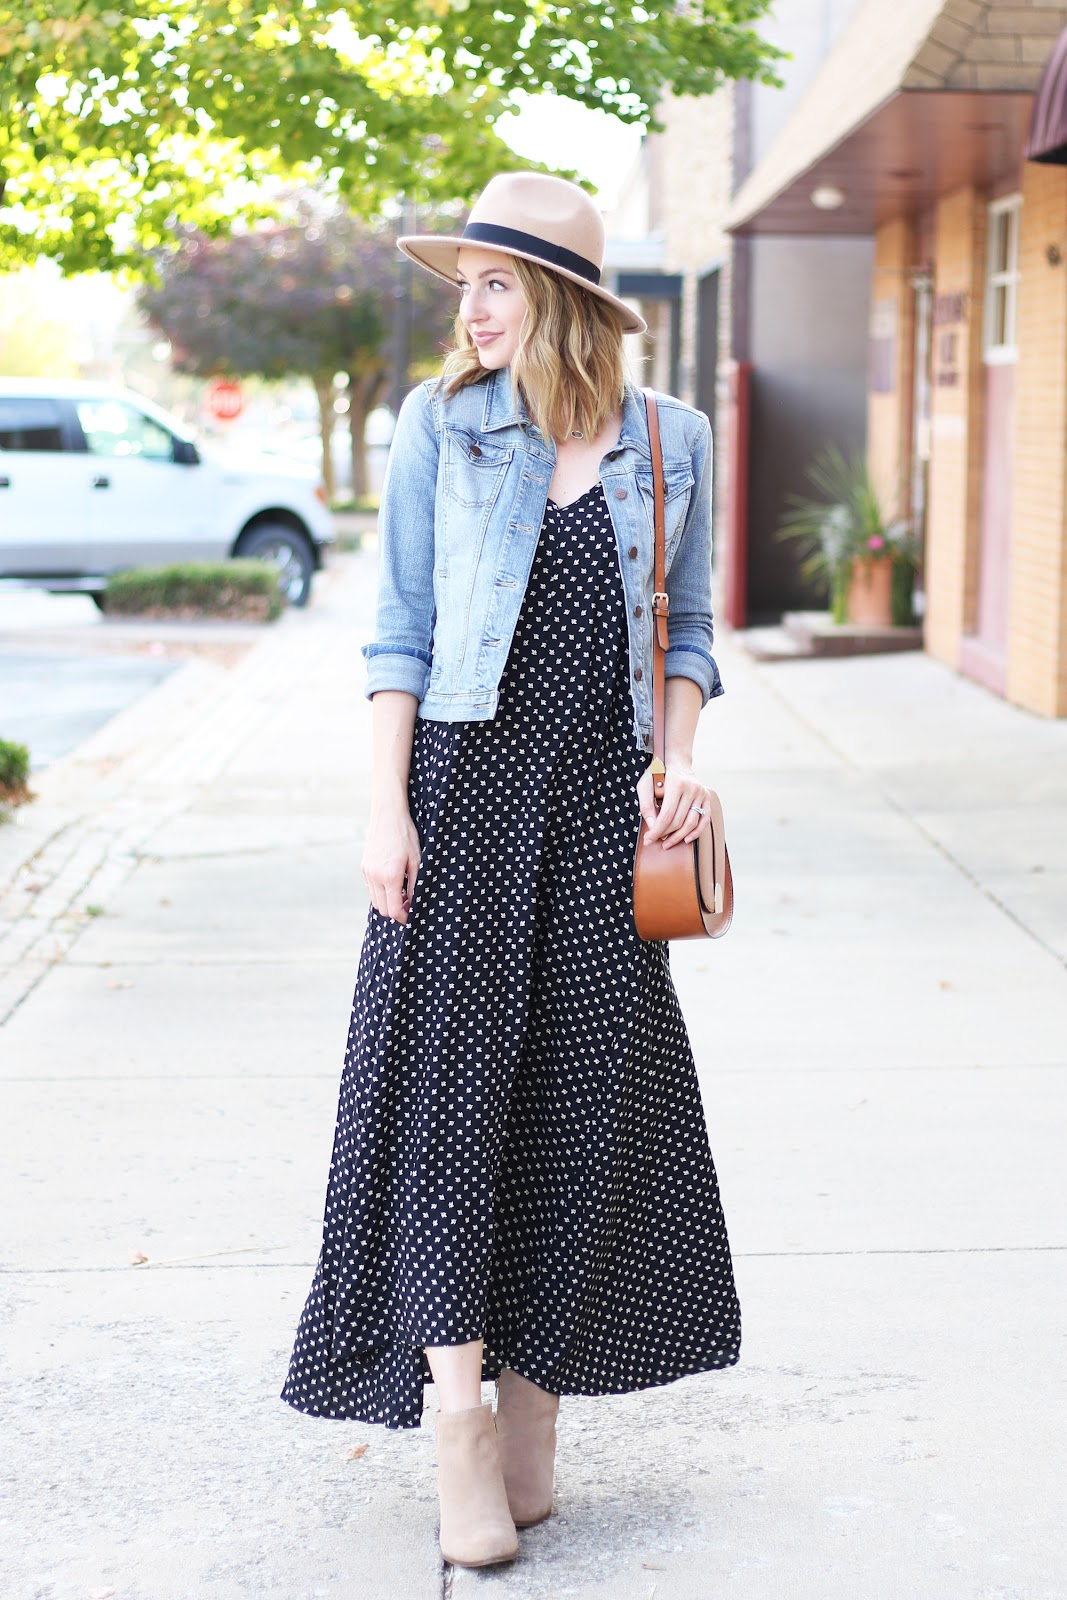 Maxi dress with denim jacket